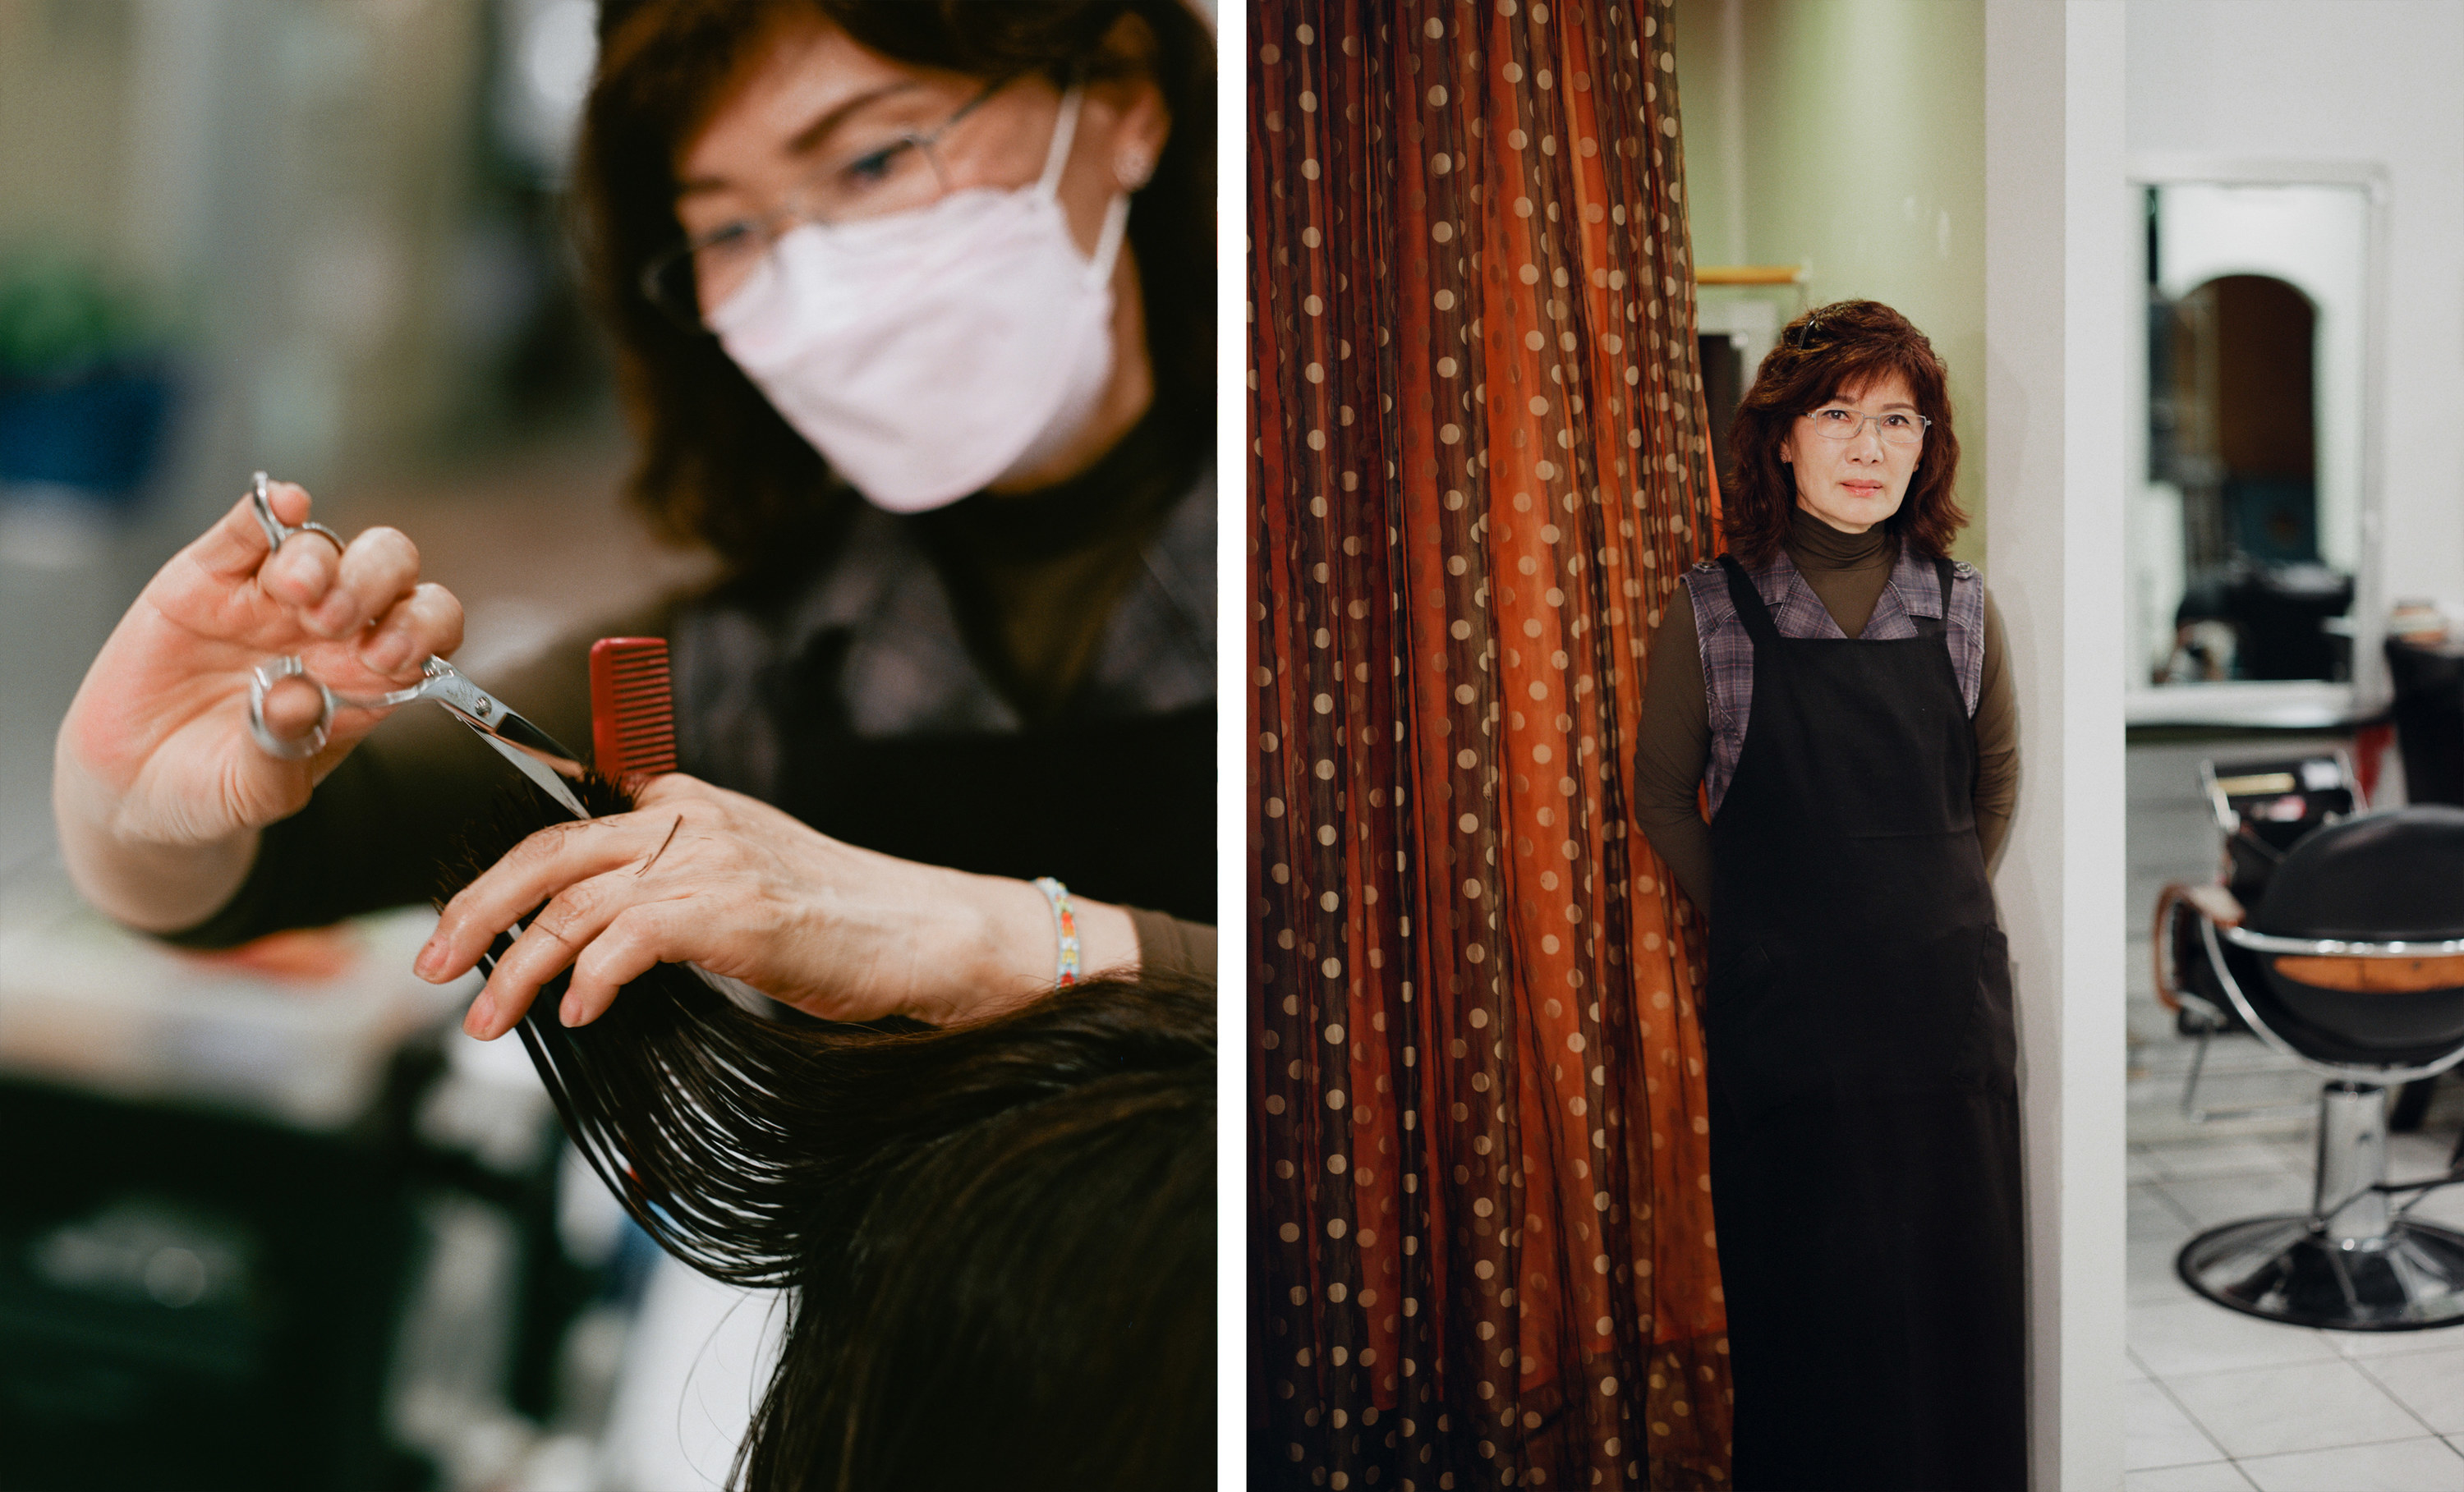 Left, a woman cutting hair, right, the same woman in front of a polka dot curtain